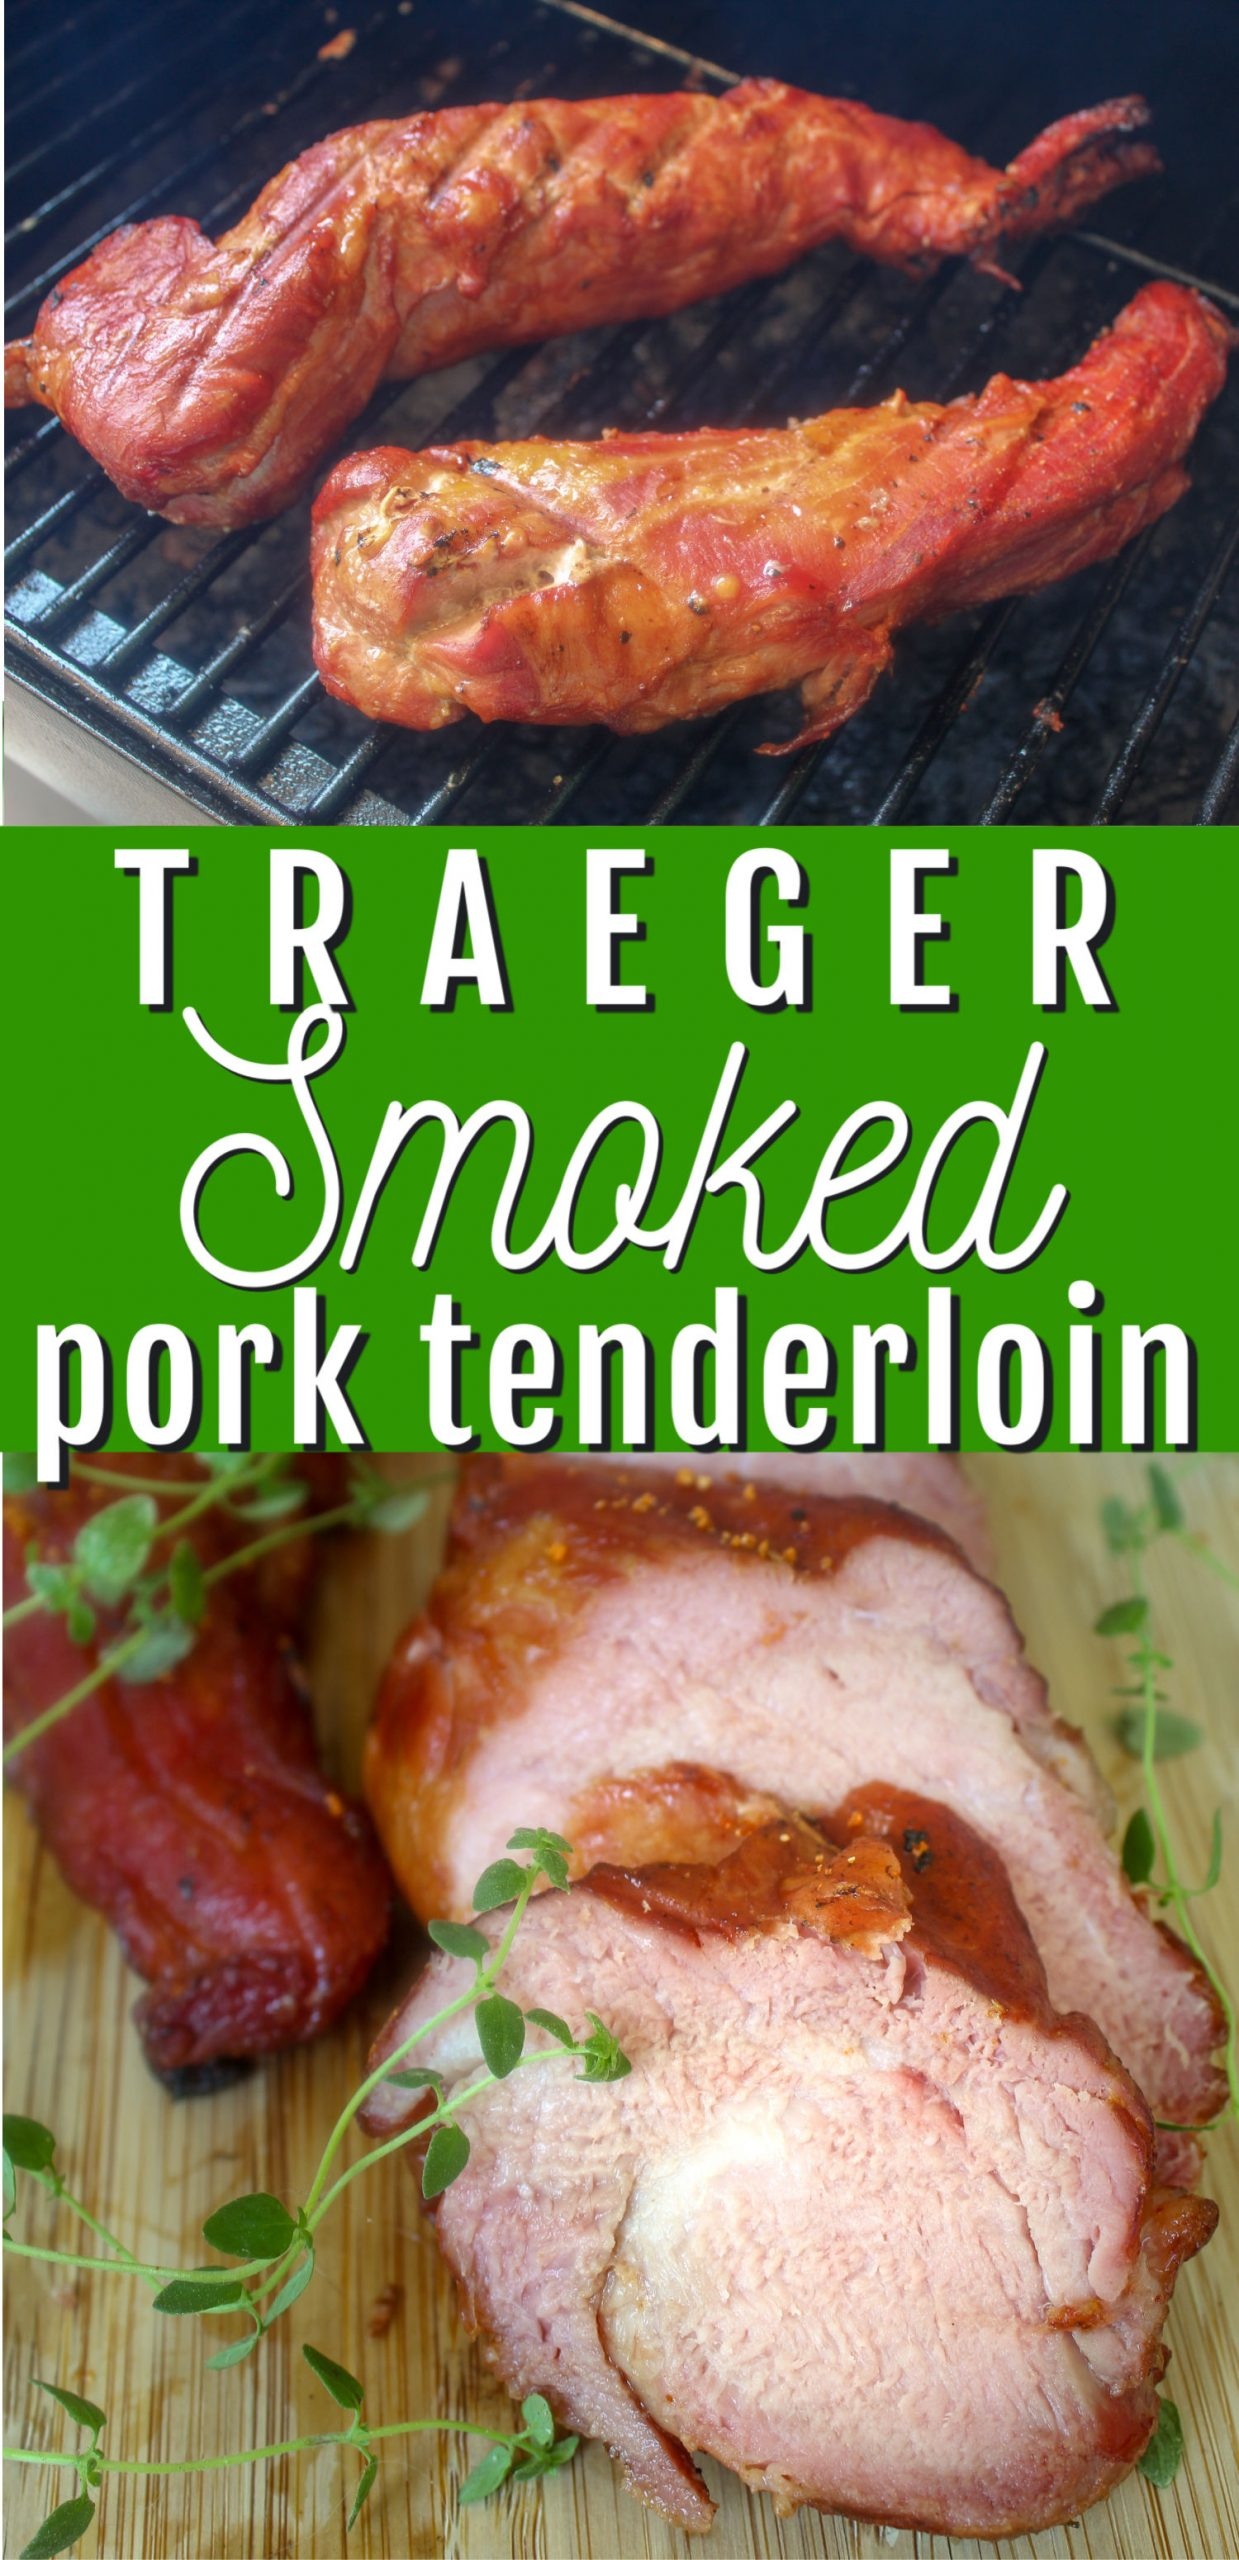 Pork Tenderloin is so delicious - pretty much anyway you make it - but Smoked Pork Tenderloin just got even better! Incredibly juicy with a smokey goodness - you'll love it!  via @foodhussy